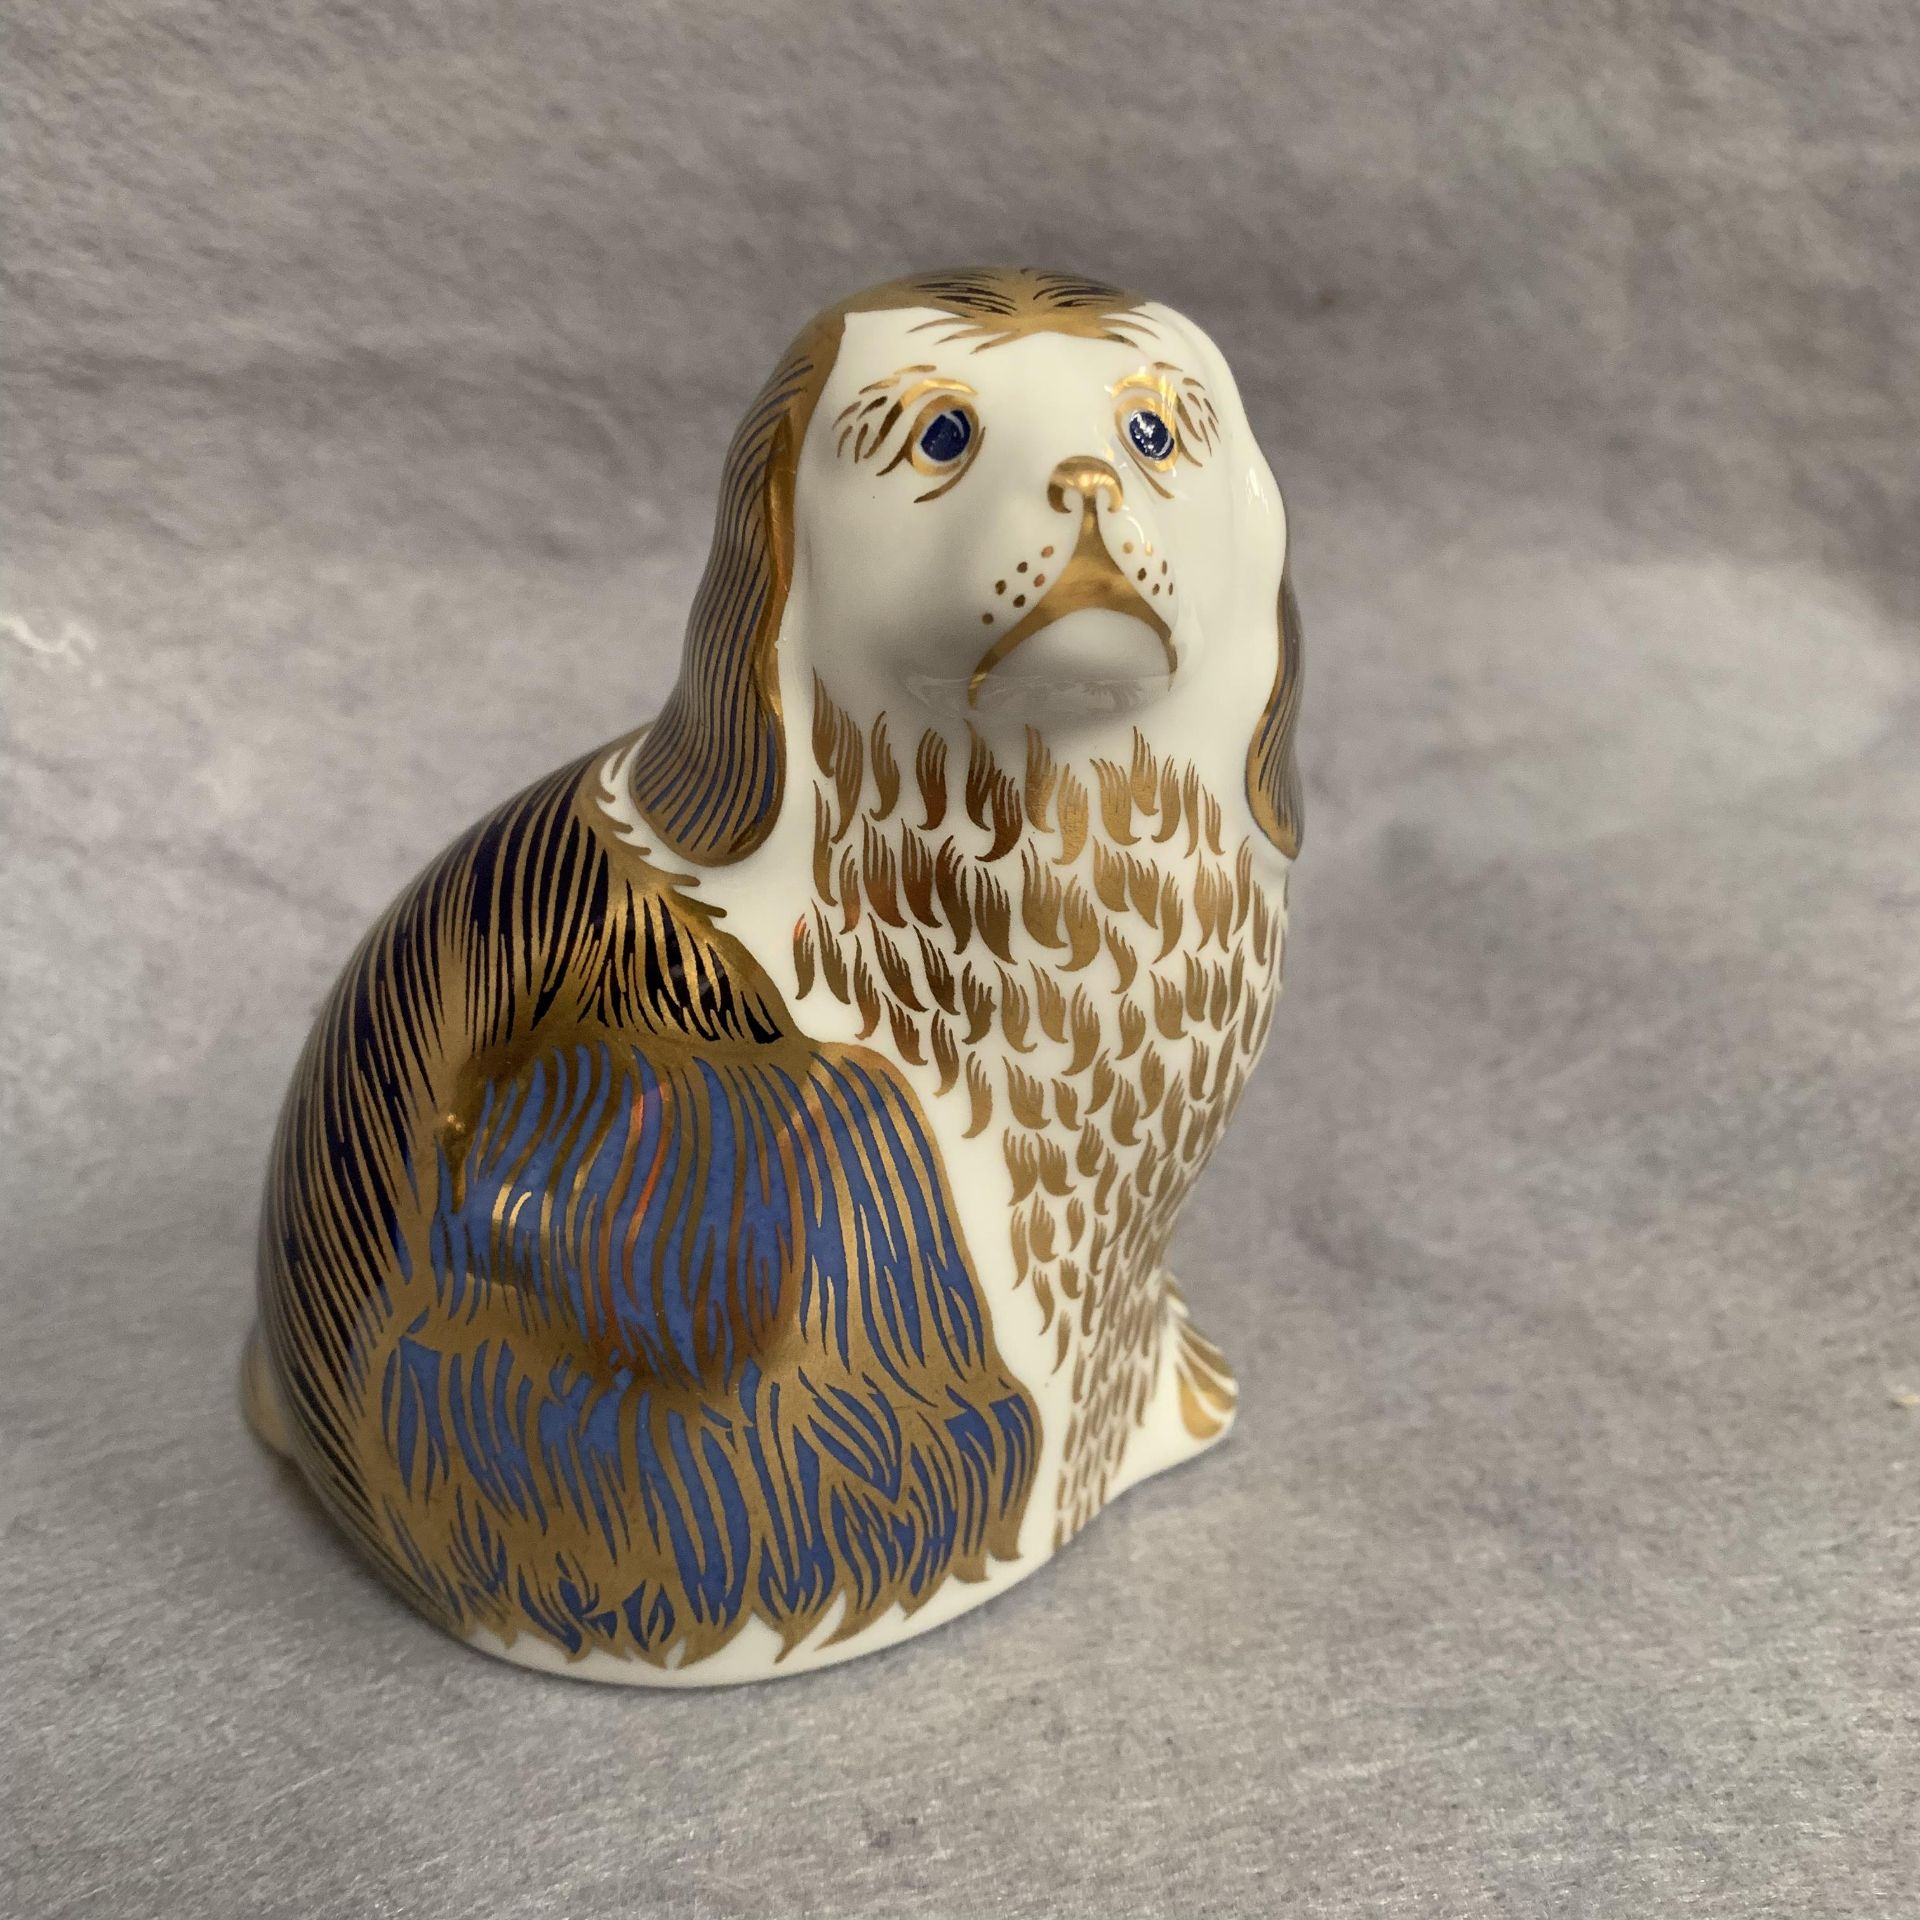 Lot 9 - Royal Crown Derby paperweight modelled as a spaniel, LVI,